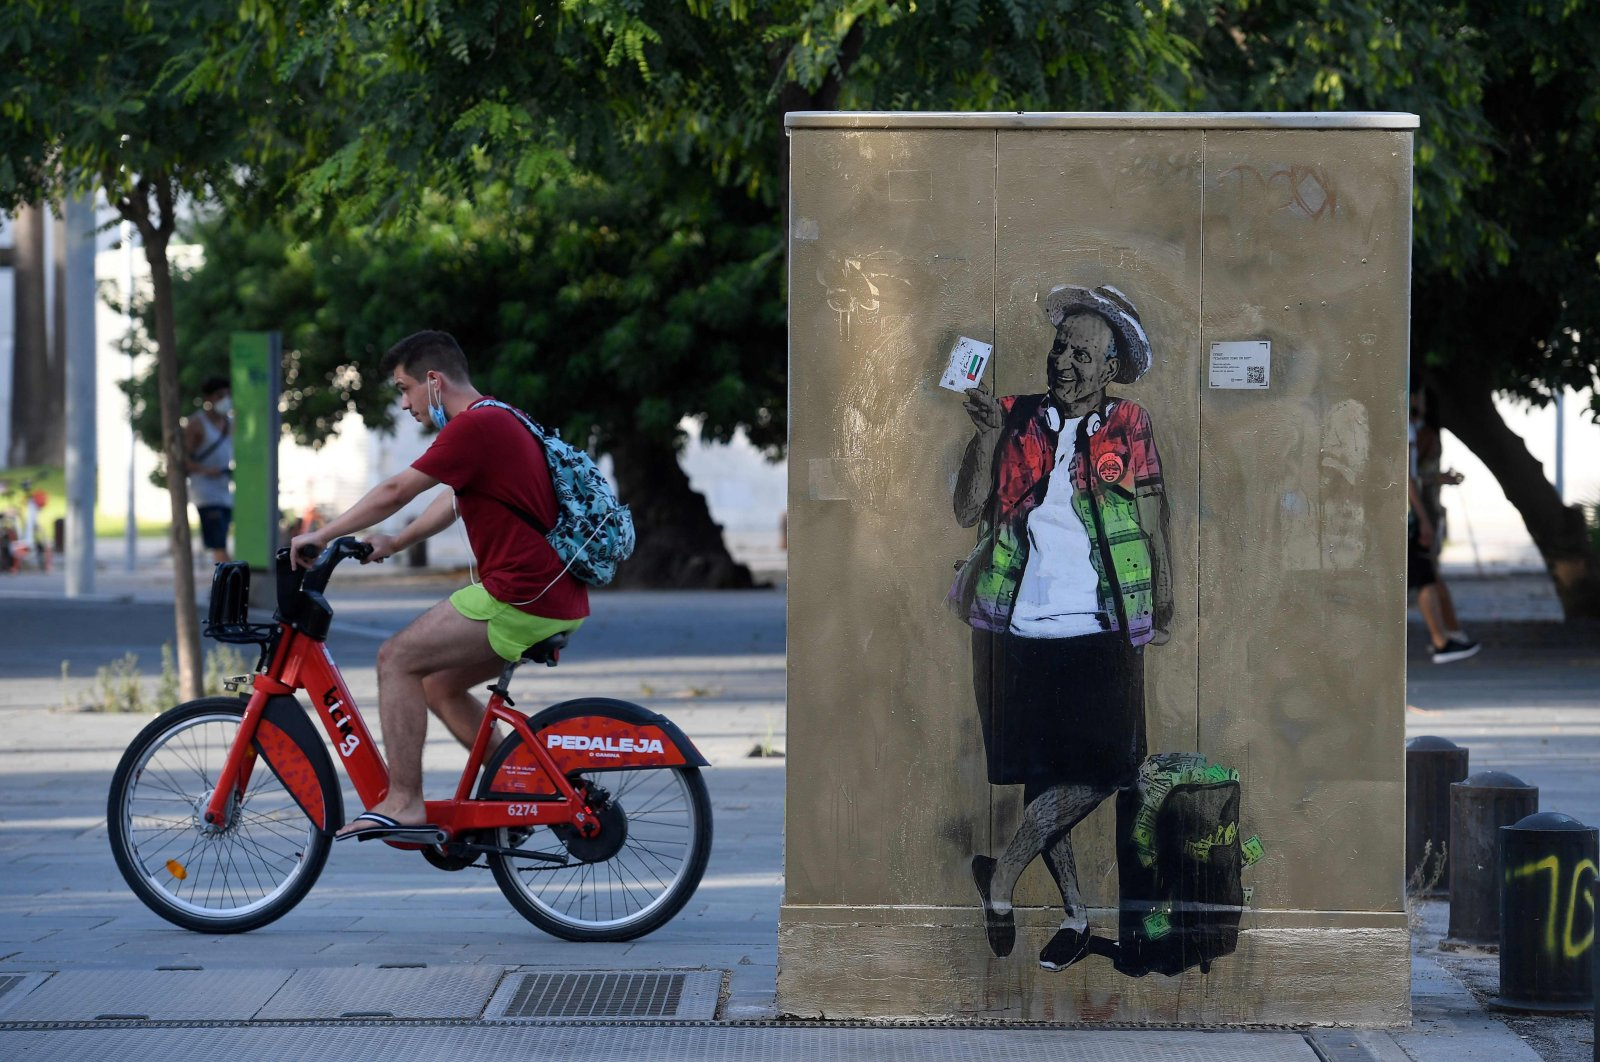 """A man rides a bicycle past street art by TVBoy titled """"Viajando como un Rey"""" (Travelling like a King) depicting former Spanish King Juan Carlos, in Barcelona, Spain, Aug. 20, 2020. (Photo by Josep Lago via AFP)"""